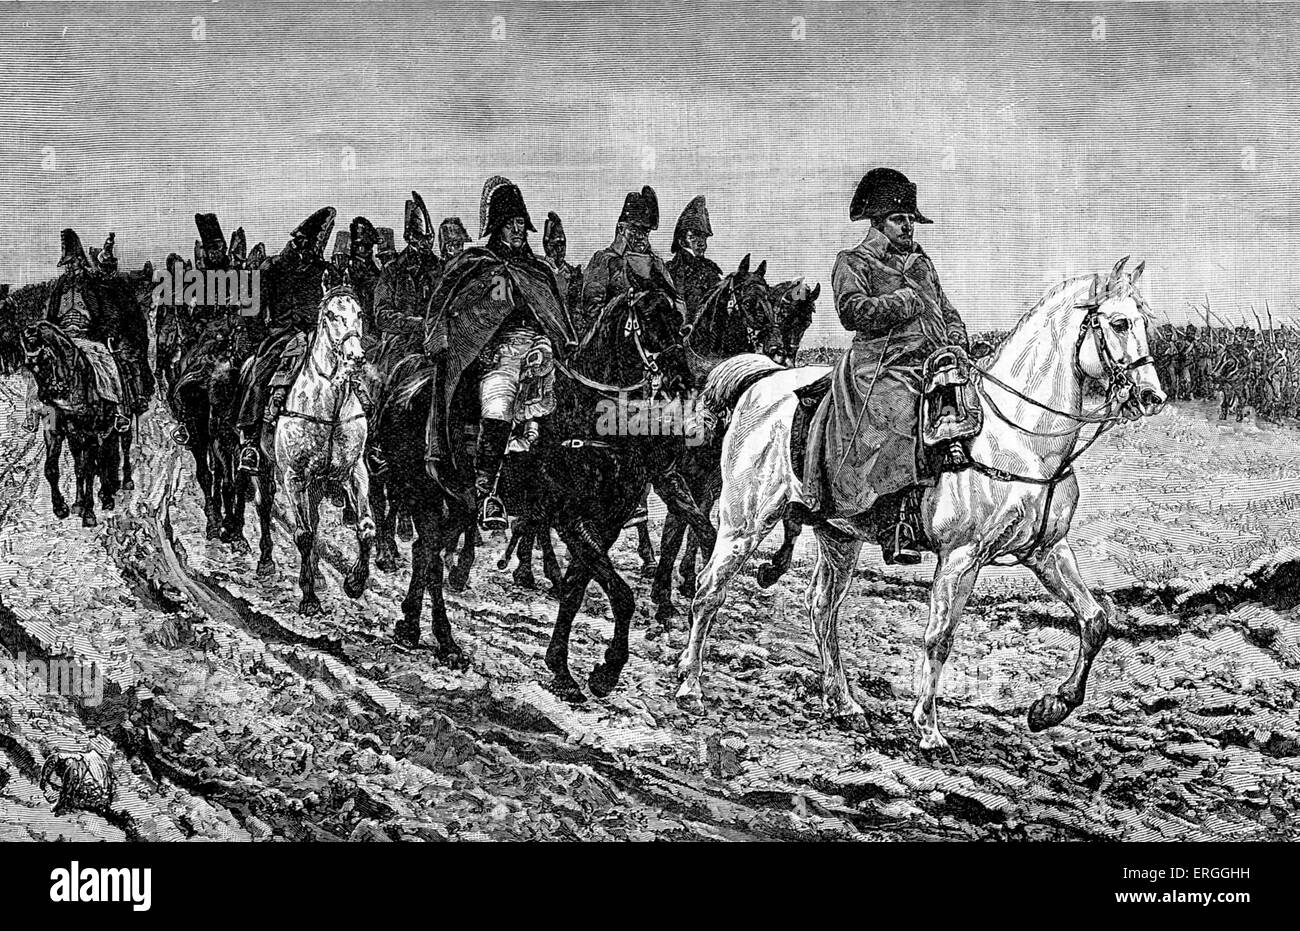 French invasion of Russia of 1812 : The retreat from Moscow. 24 June – 14  December 1812. During the Napoleonic Wars.